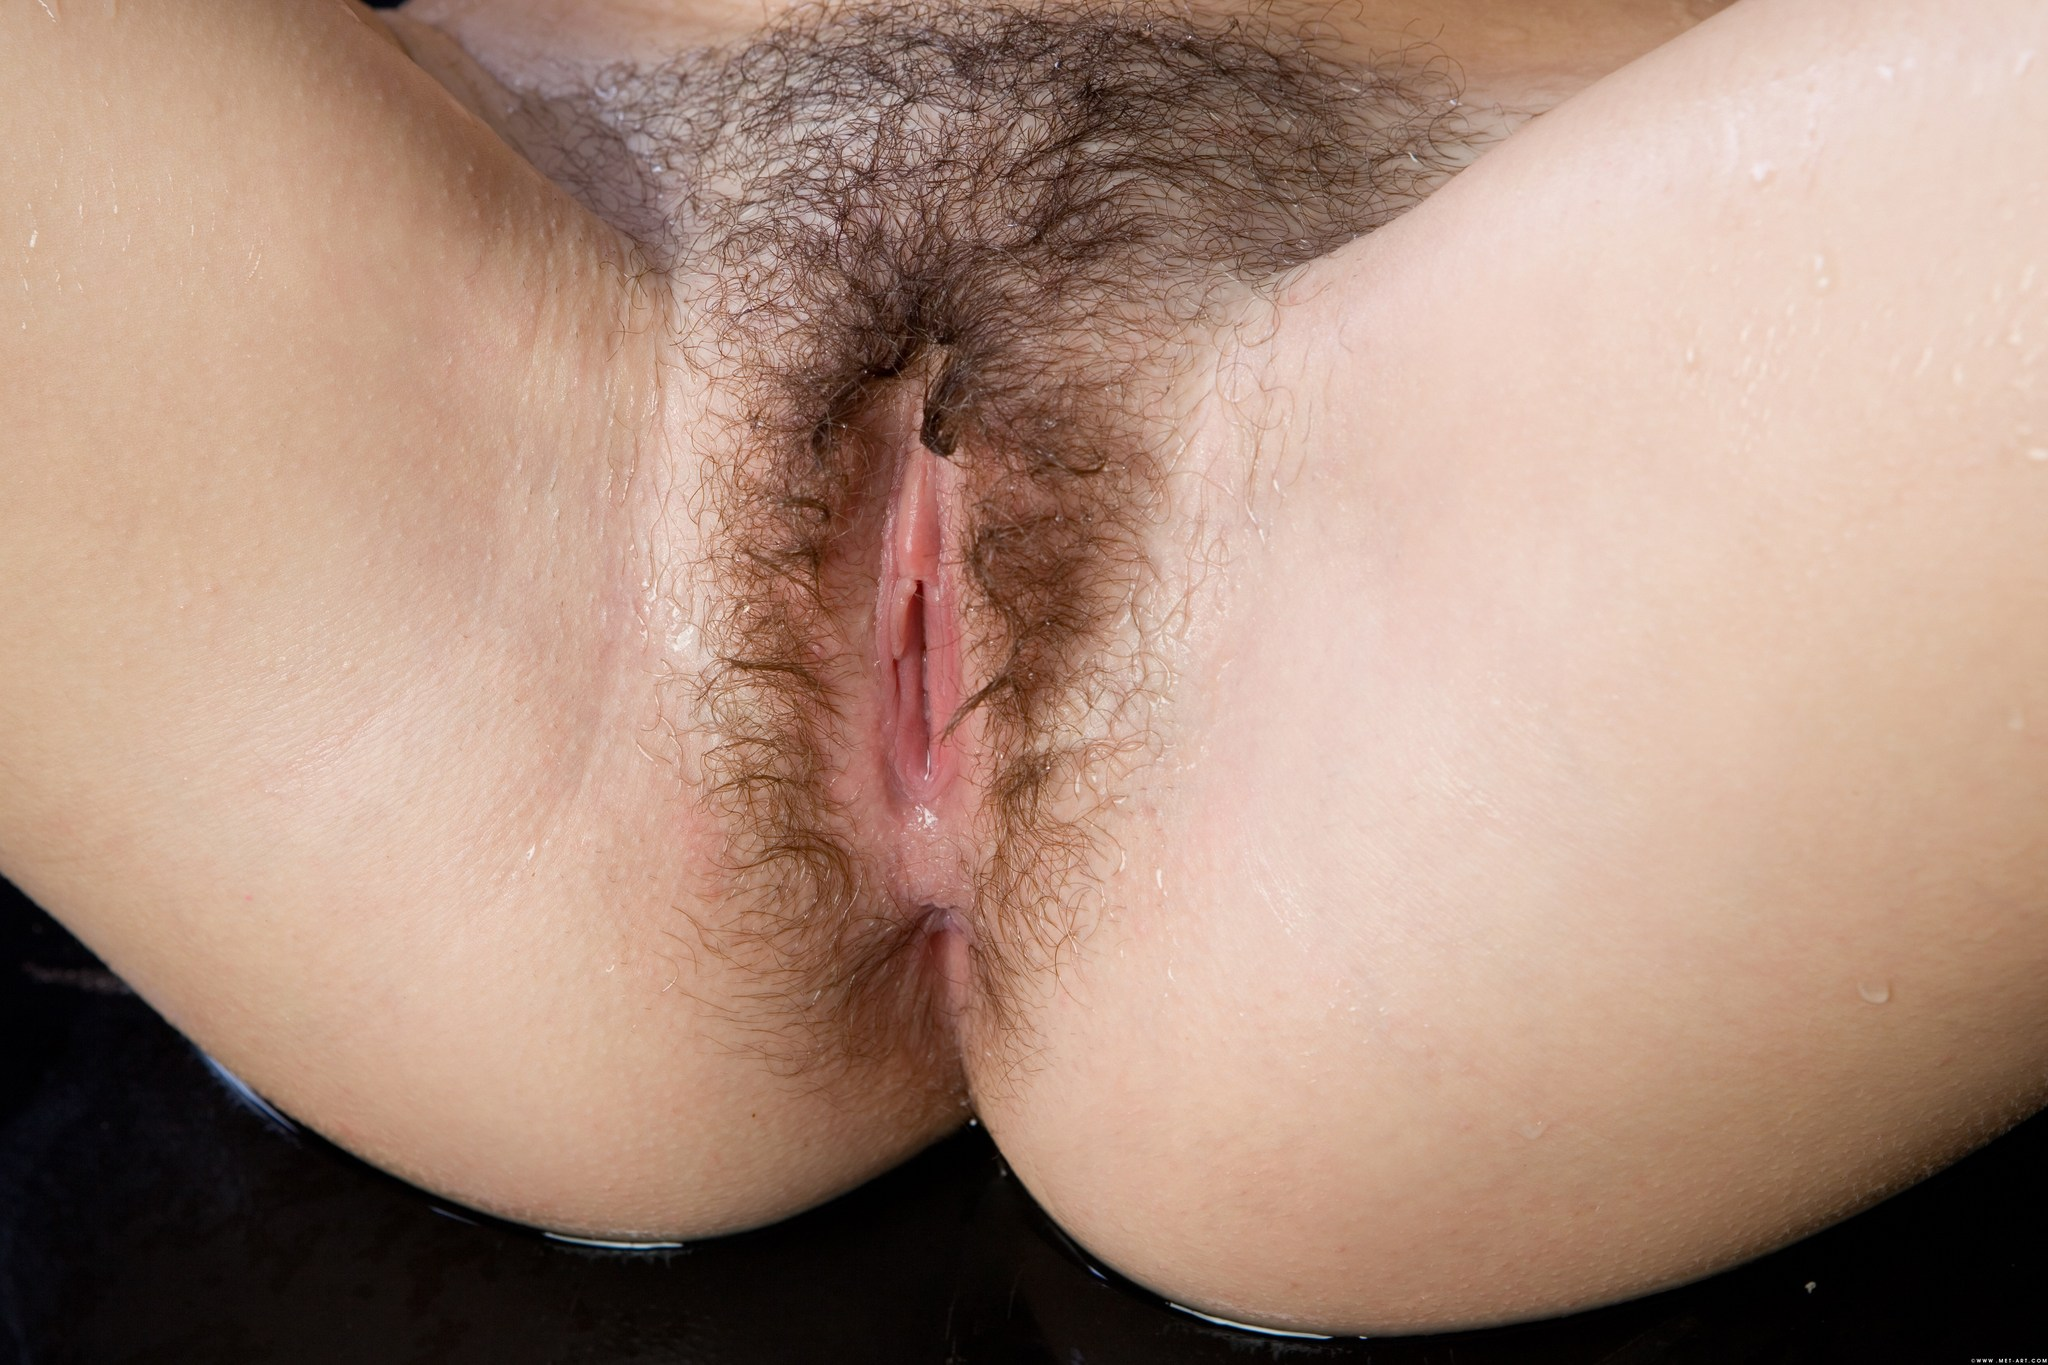 Beautiful Hairy Pussy I Love How It Goes All The Way Down Around